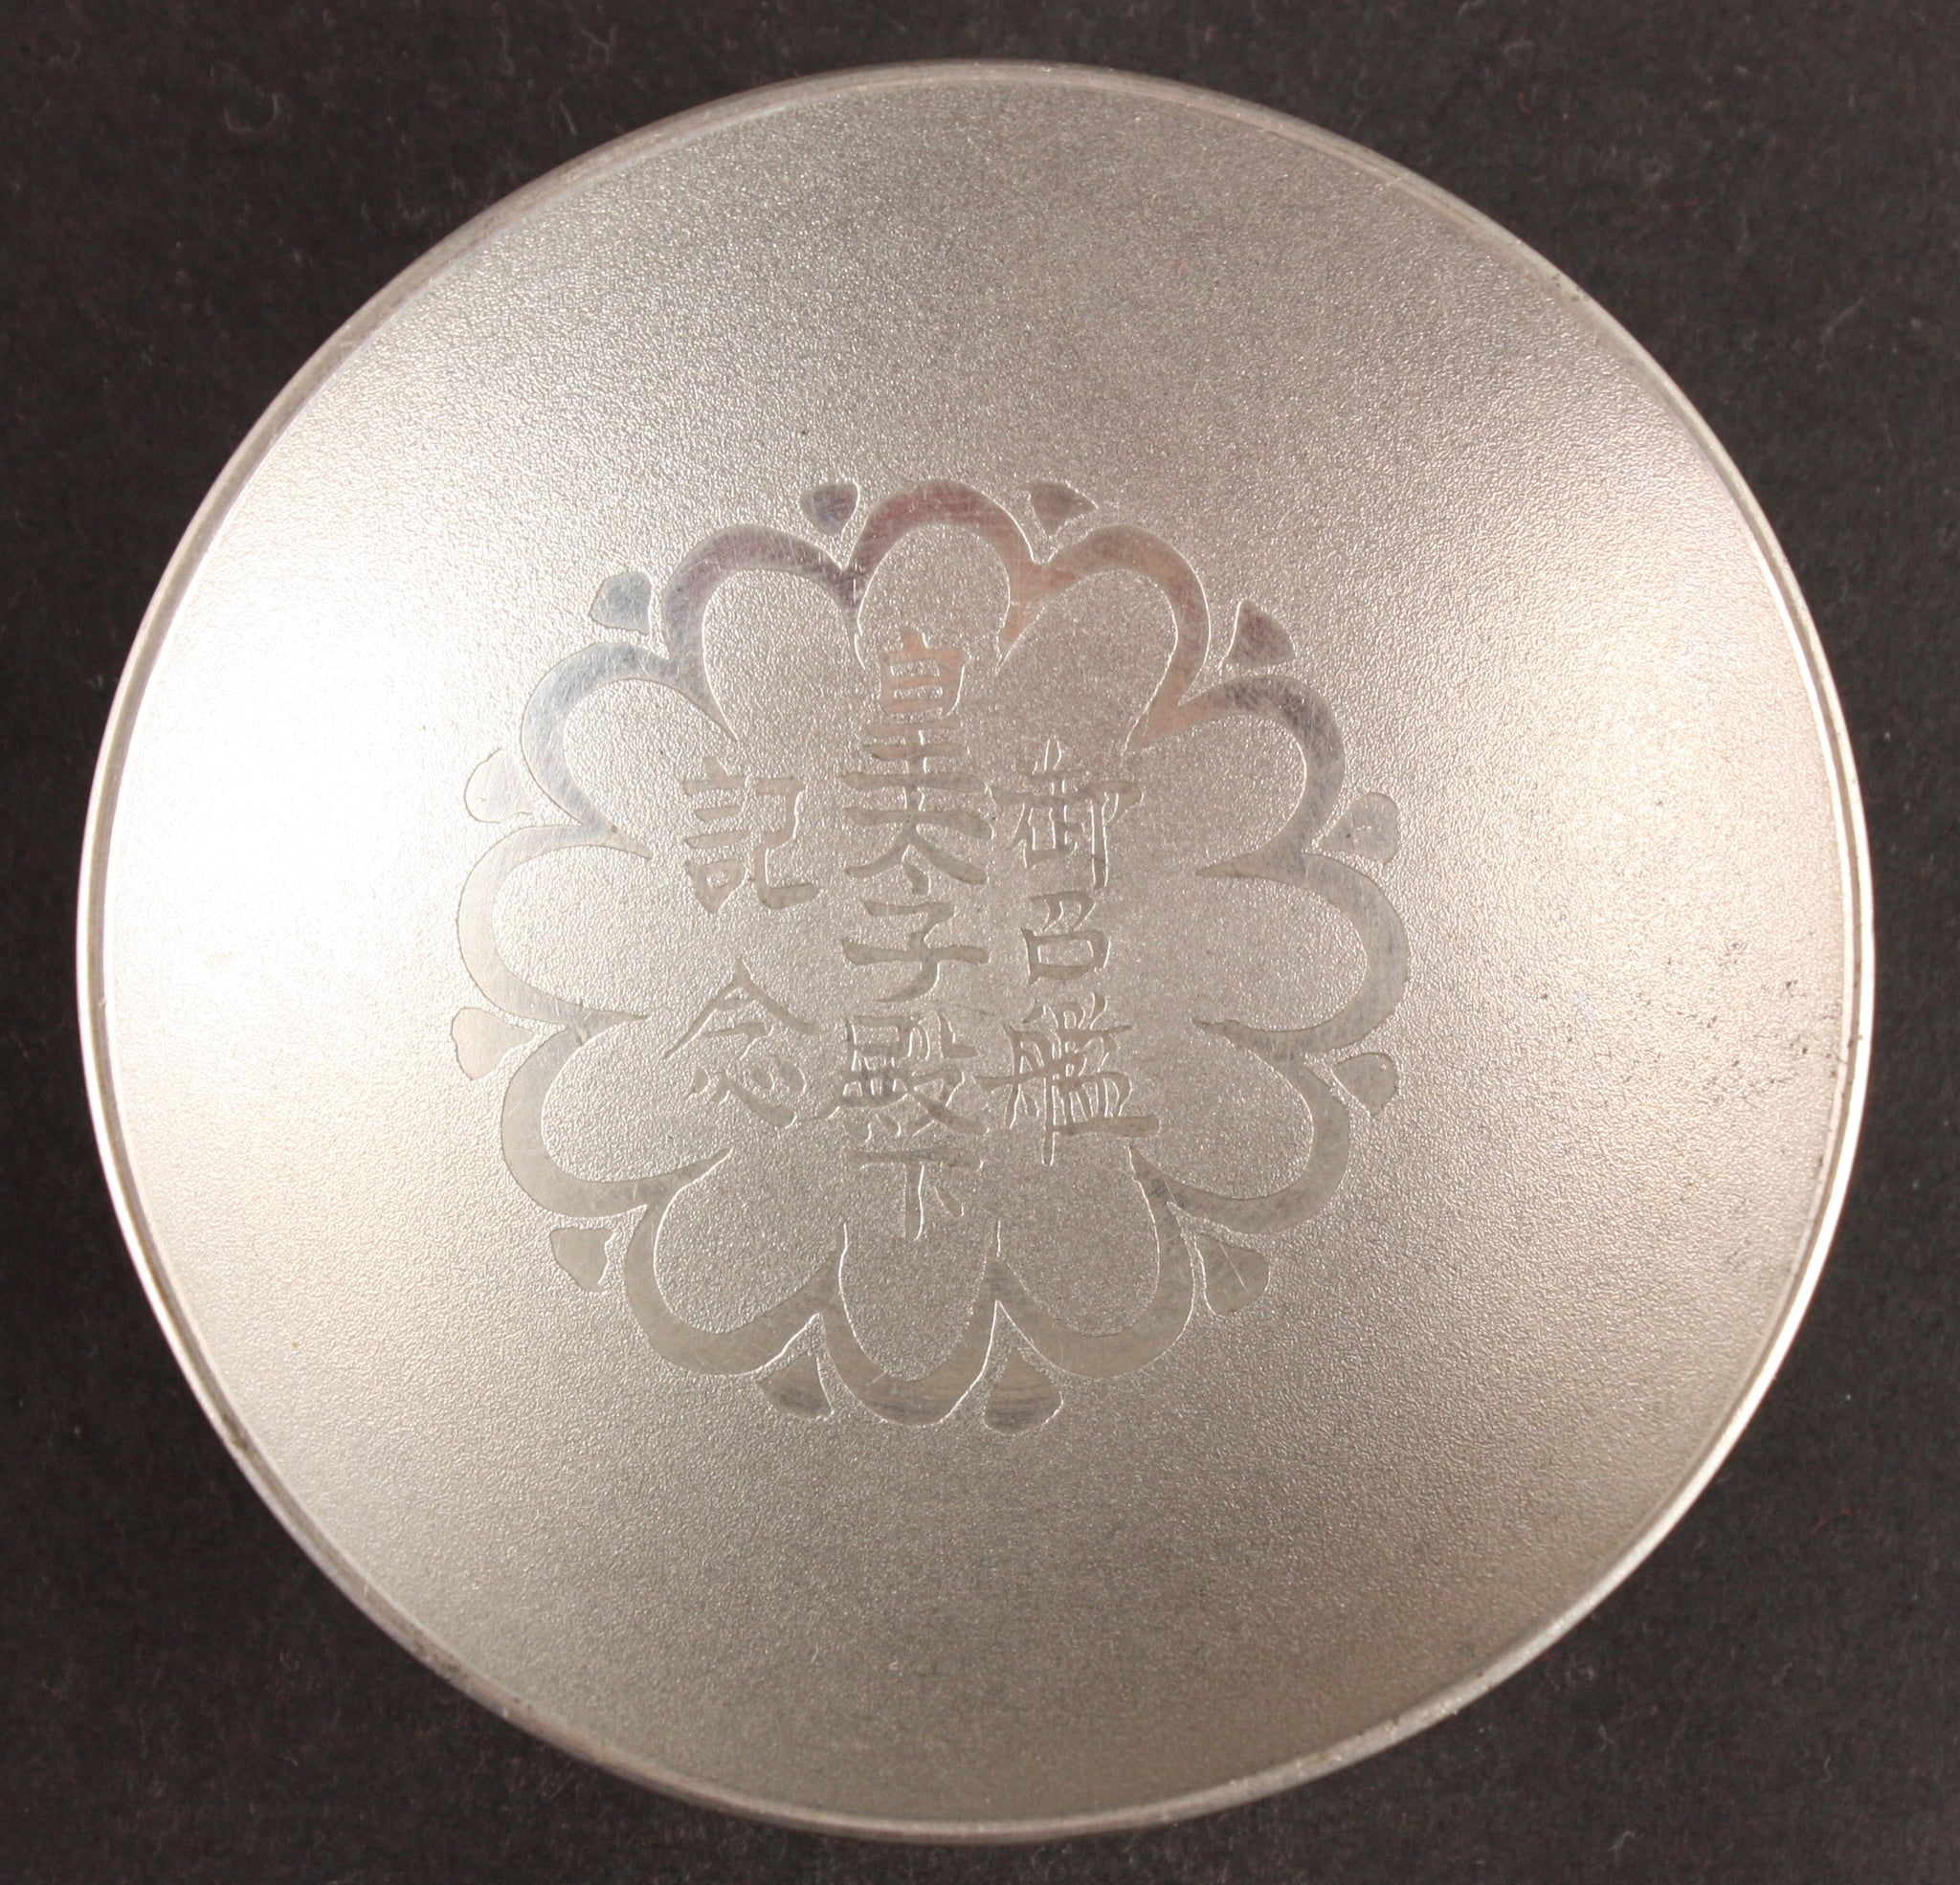 Very Rare Antique Japanese Military 1926 Crown Prince Hirohito Battleship Nagato Pewter Sake Cup